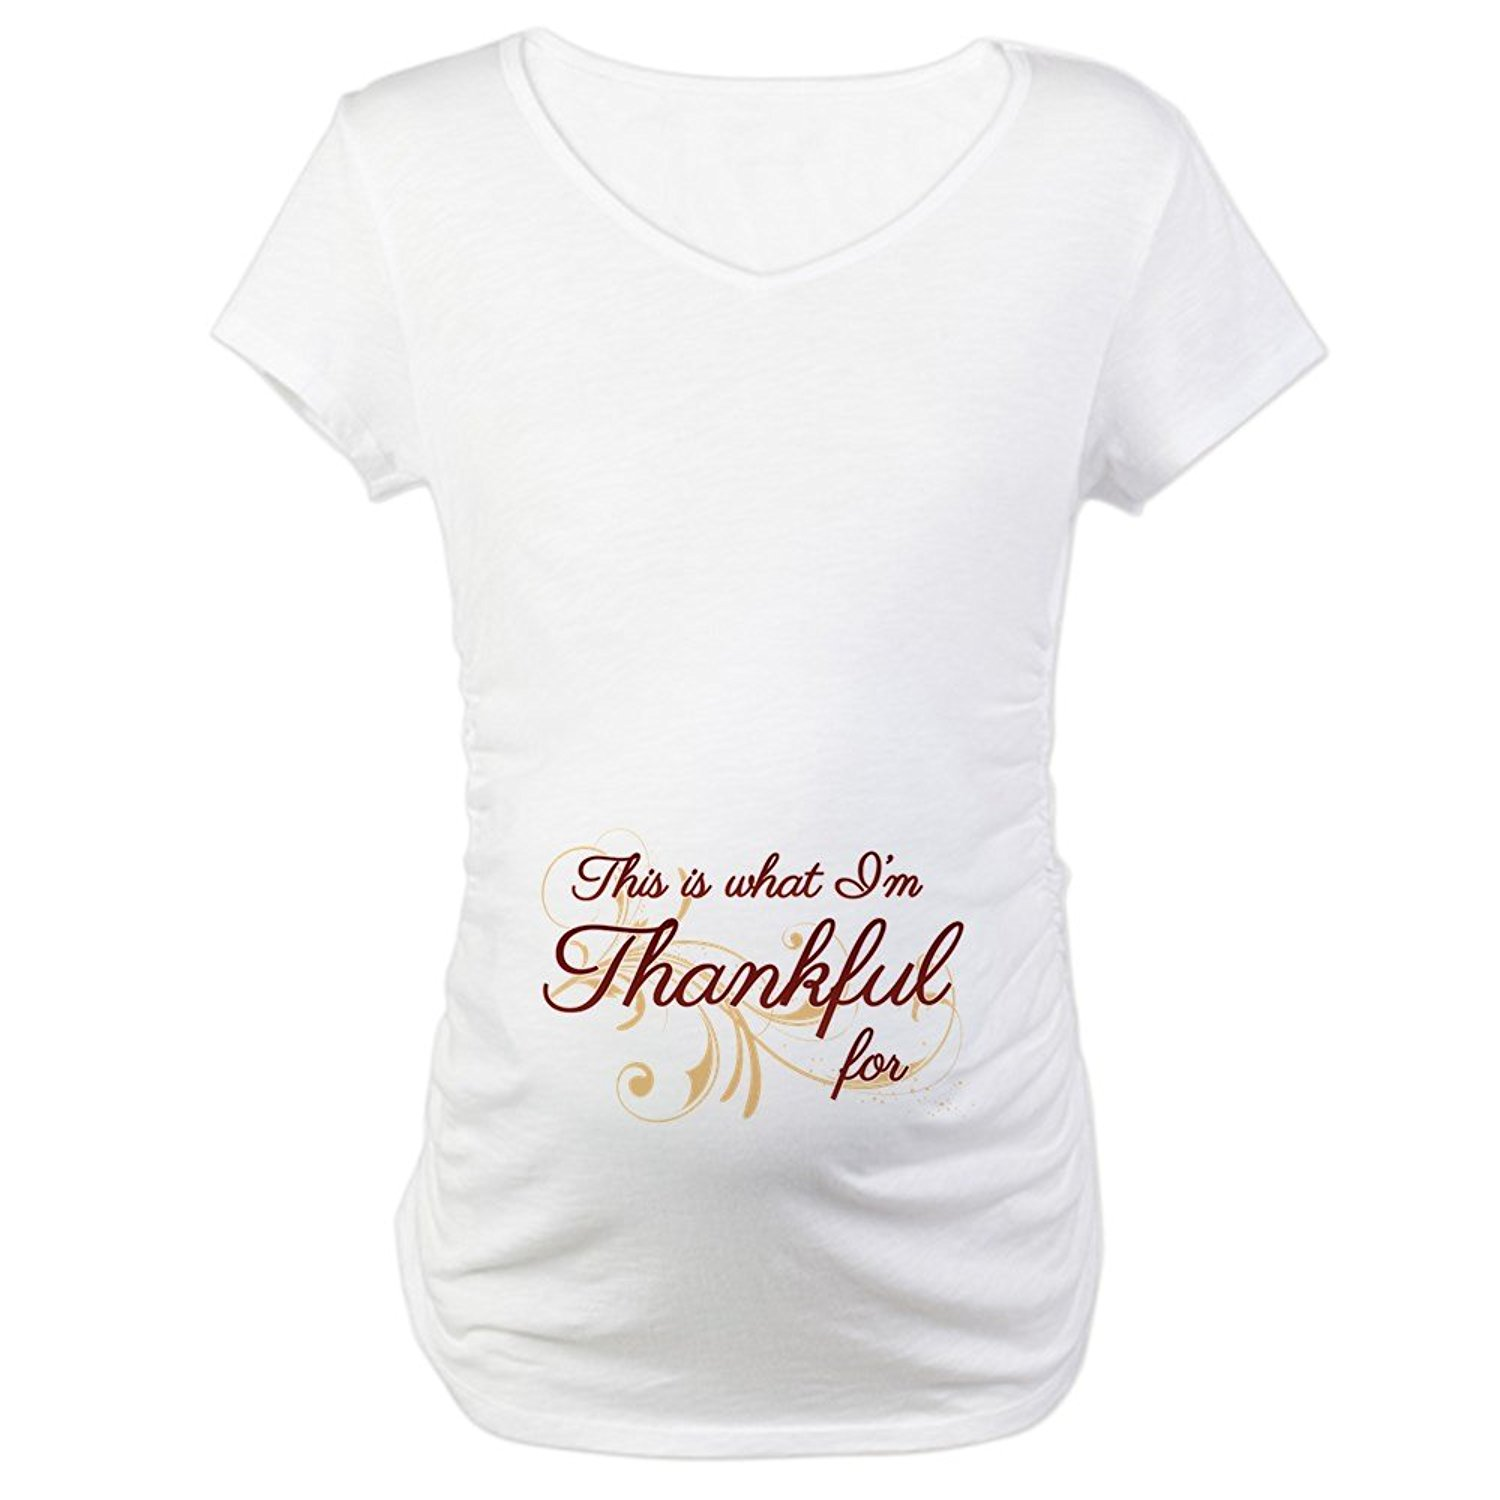 maternity shirts amazon.com: cafepress - this is what im thankful for - cotton maternity t- wmftlef